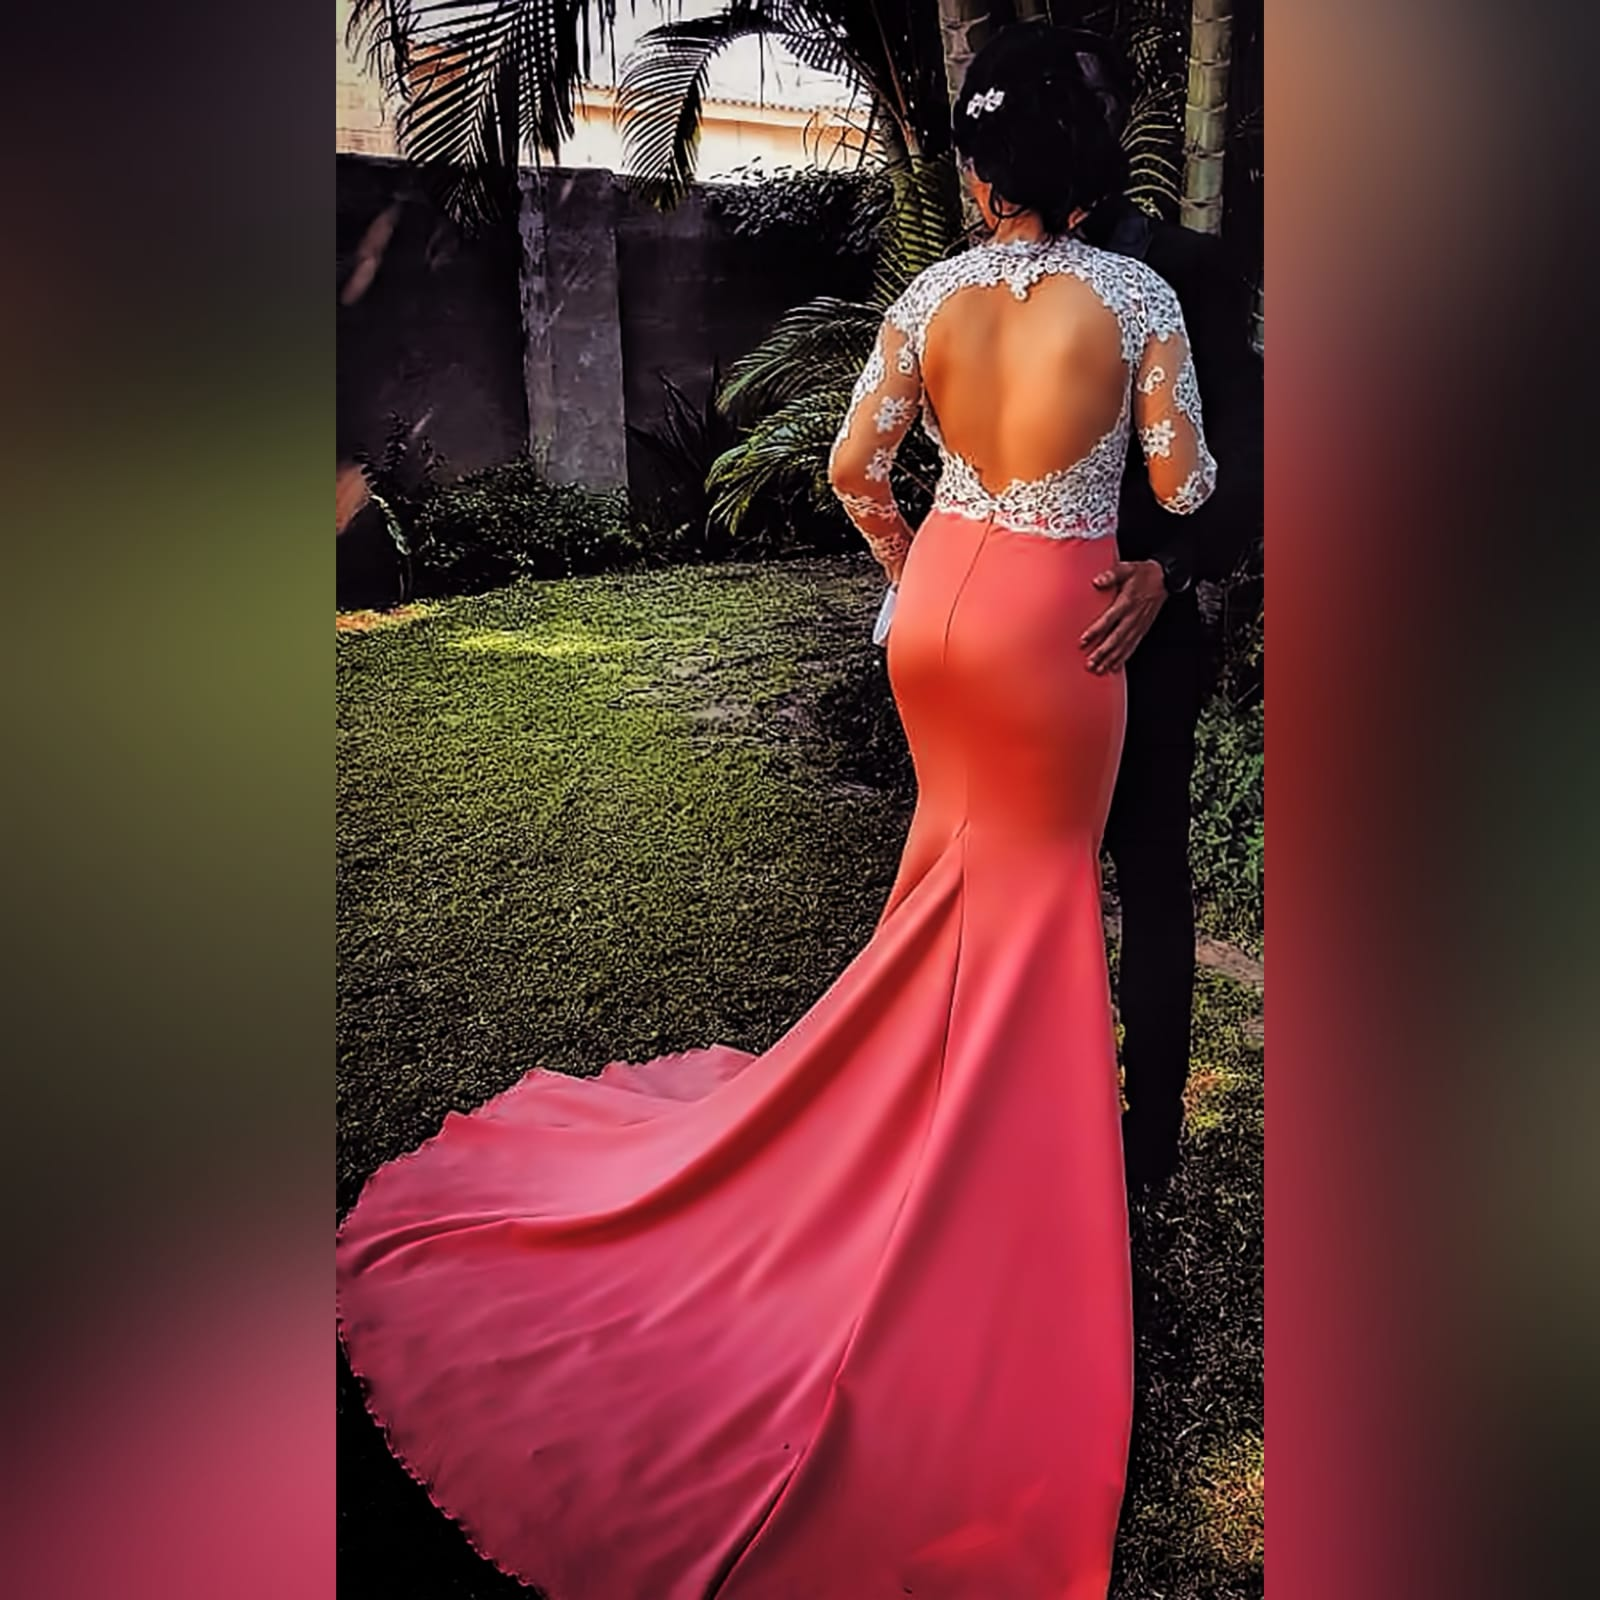 Bright coral and silver soft mermaid prom dress 5 bright coral and silver soft mermaid prom dress with a train. Bodice detailed in silver with an open heart shaped back and long illusion lace sleeves